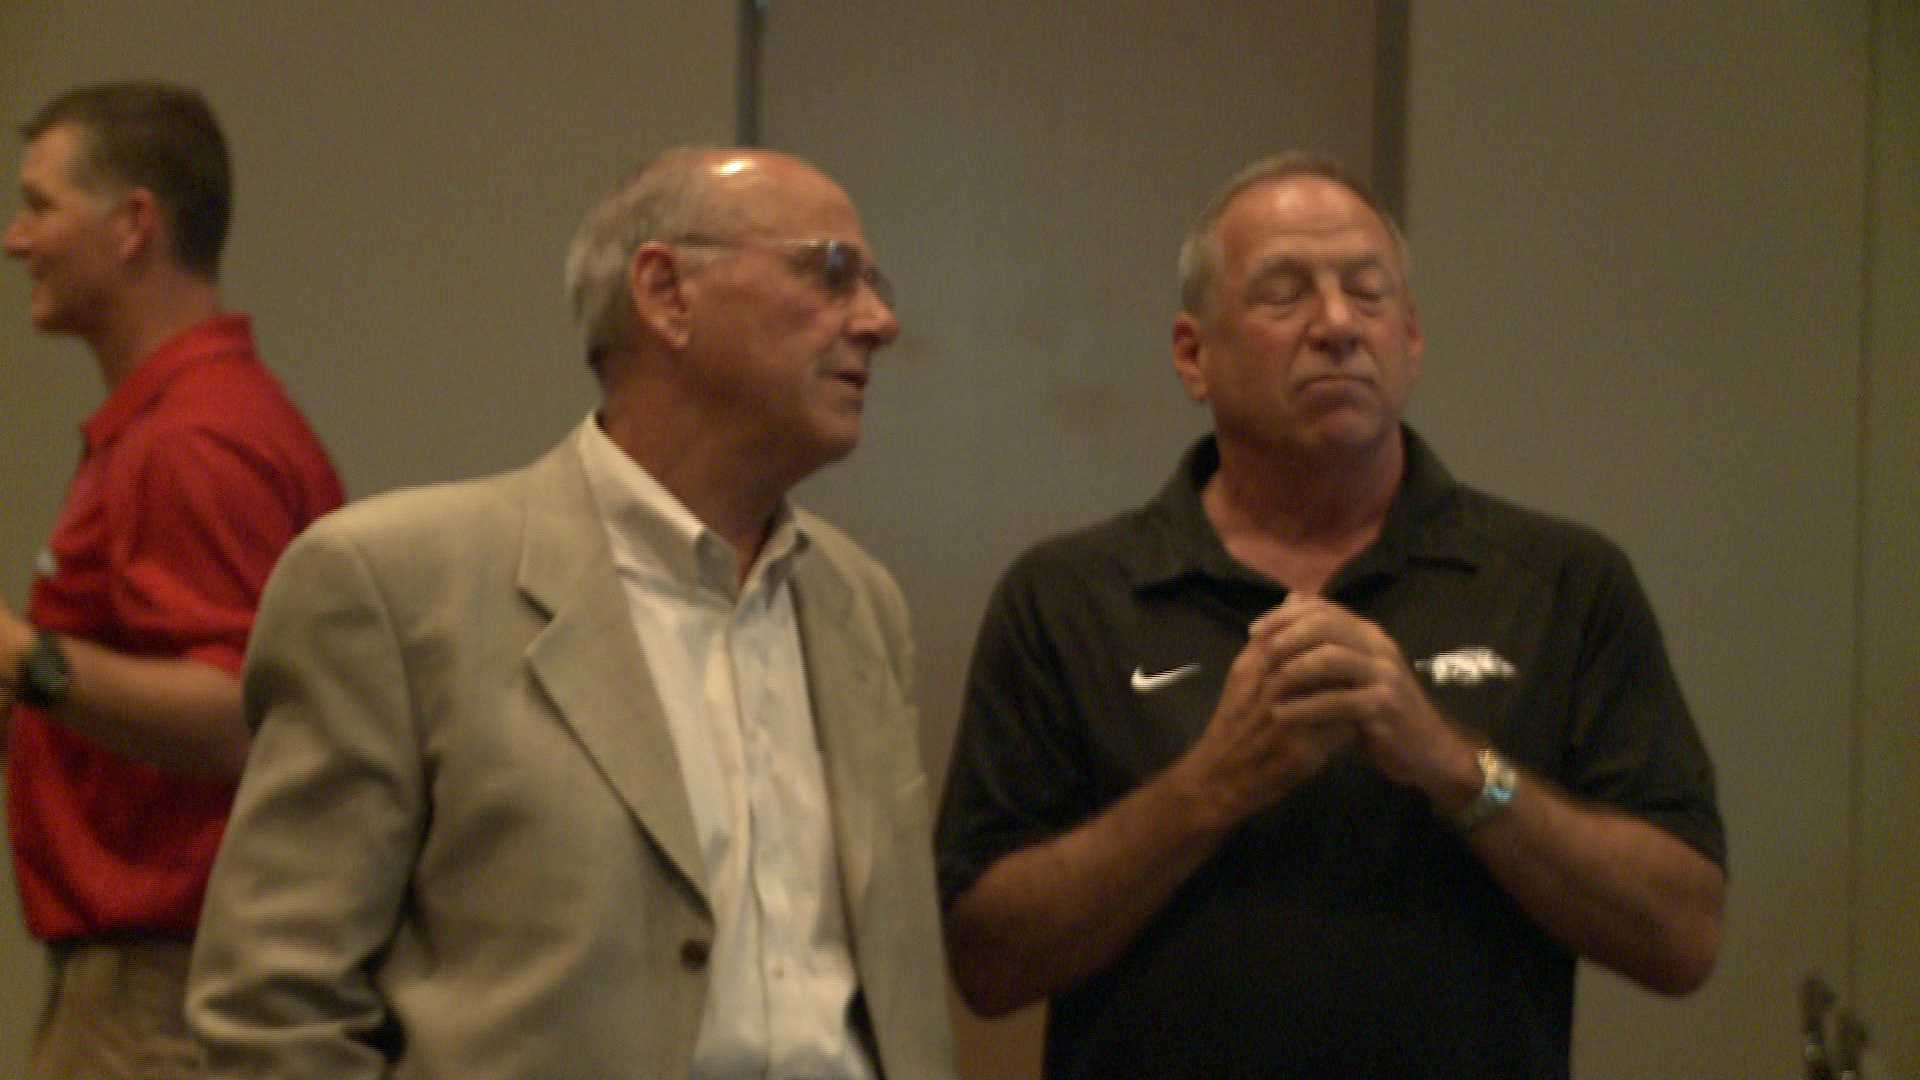 John L. Smith and Tom Collen spoke at the Northwest Arkansas Razorback Club 2012 Banquet Wednesday night.